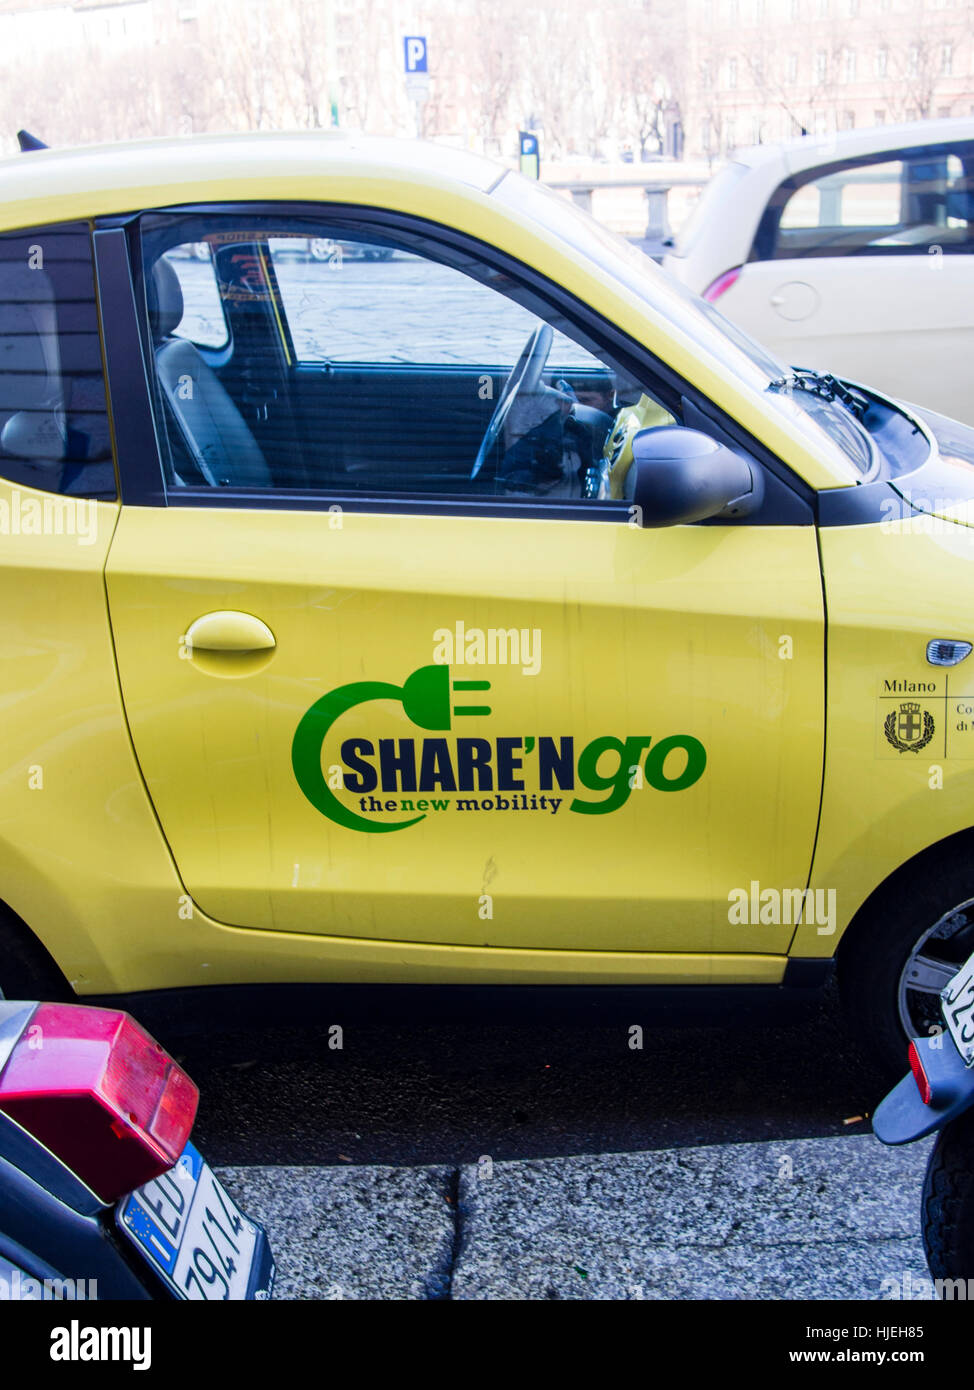 Share and go car rental service, Milan, Italy - Stock Image